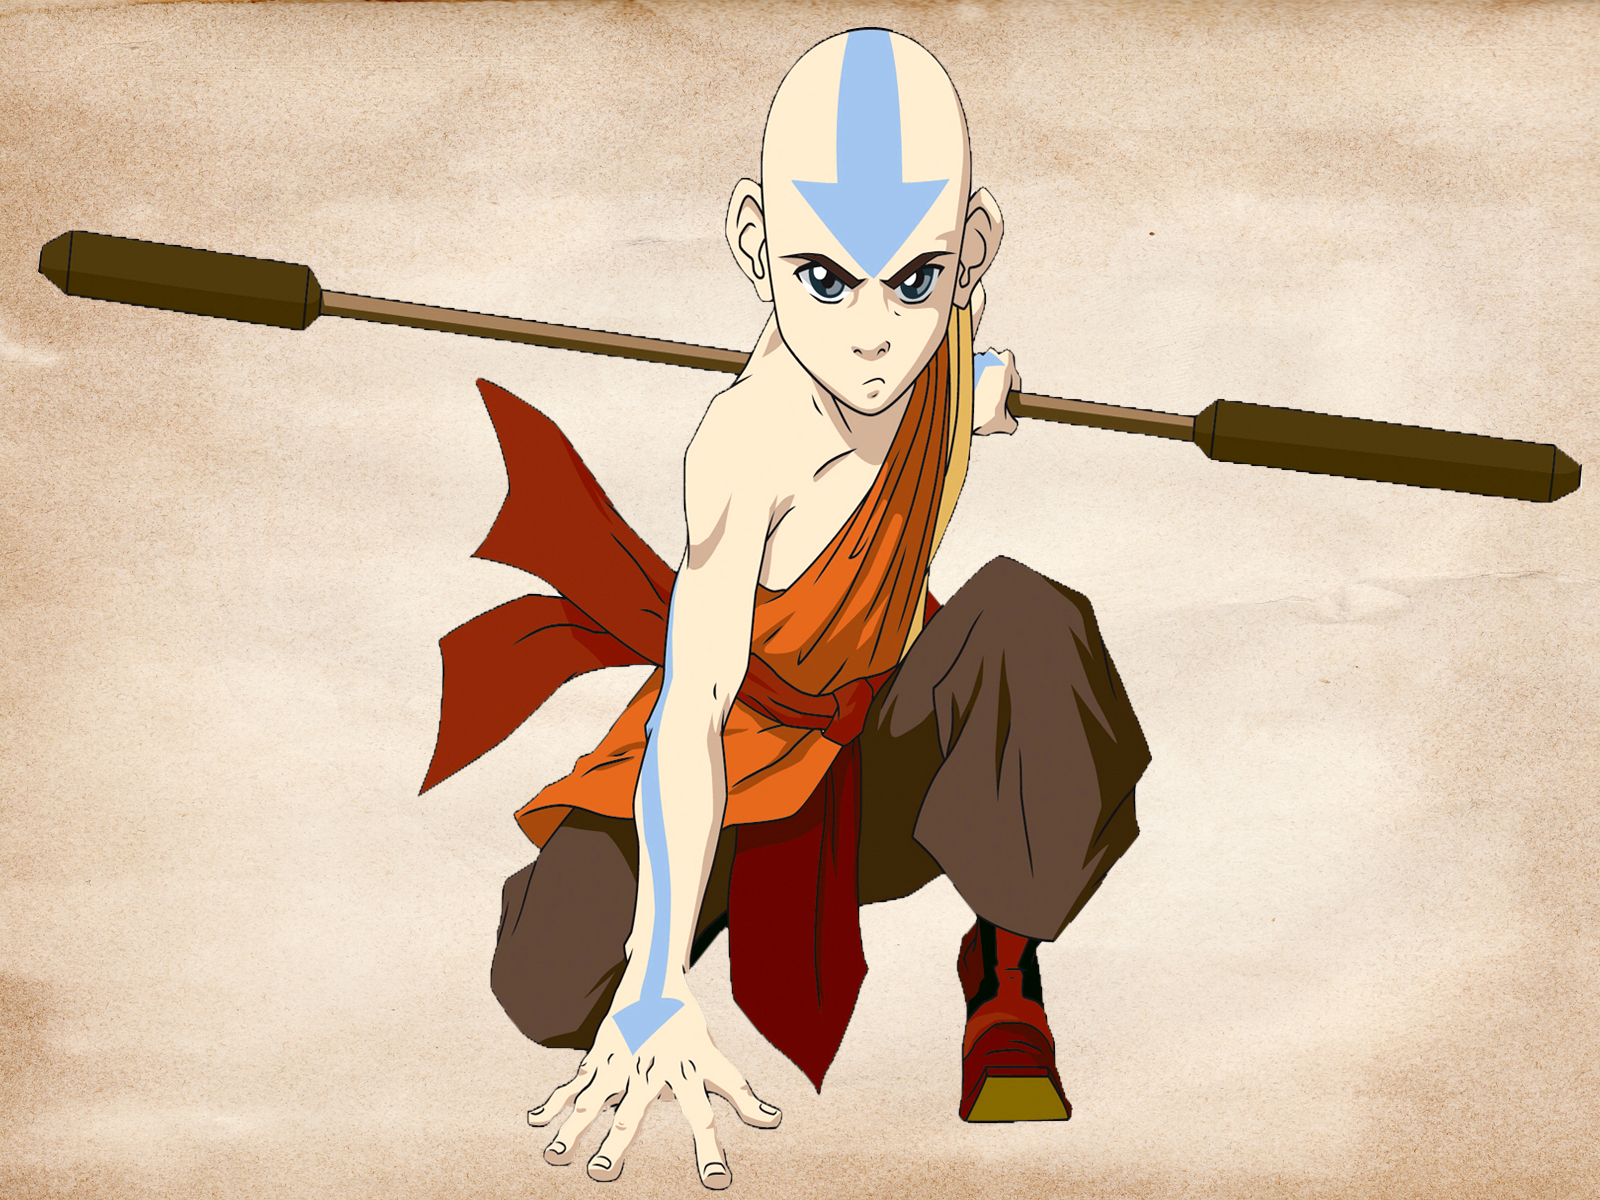 desktop wallpaper: aang avatar the last airbender hd anime wallpaper